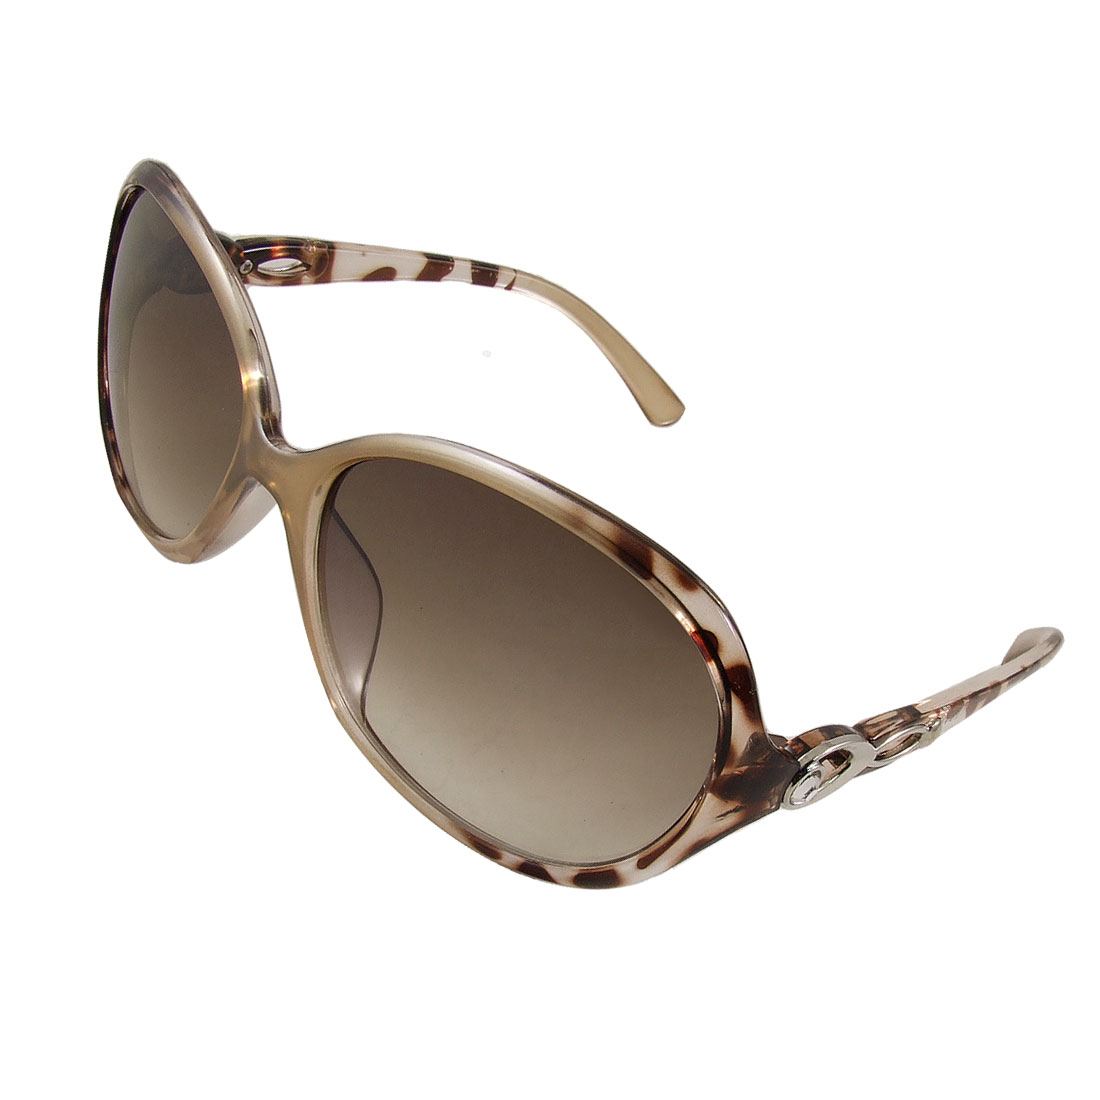 Leopard Pattern Plastic Arms Full Frame Colored Lens Sunglasses for Women